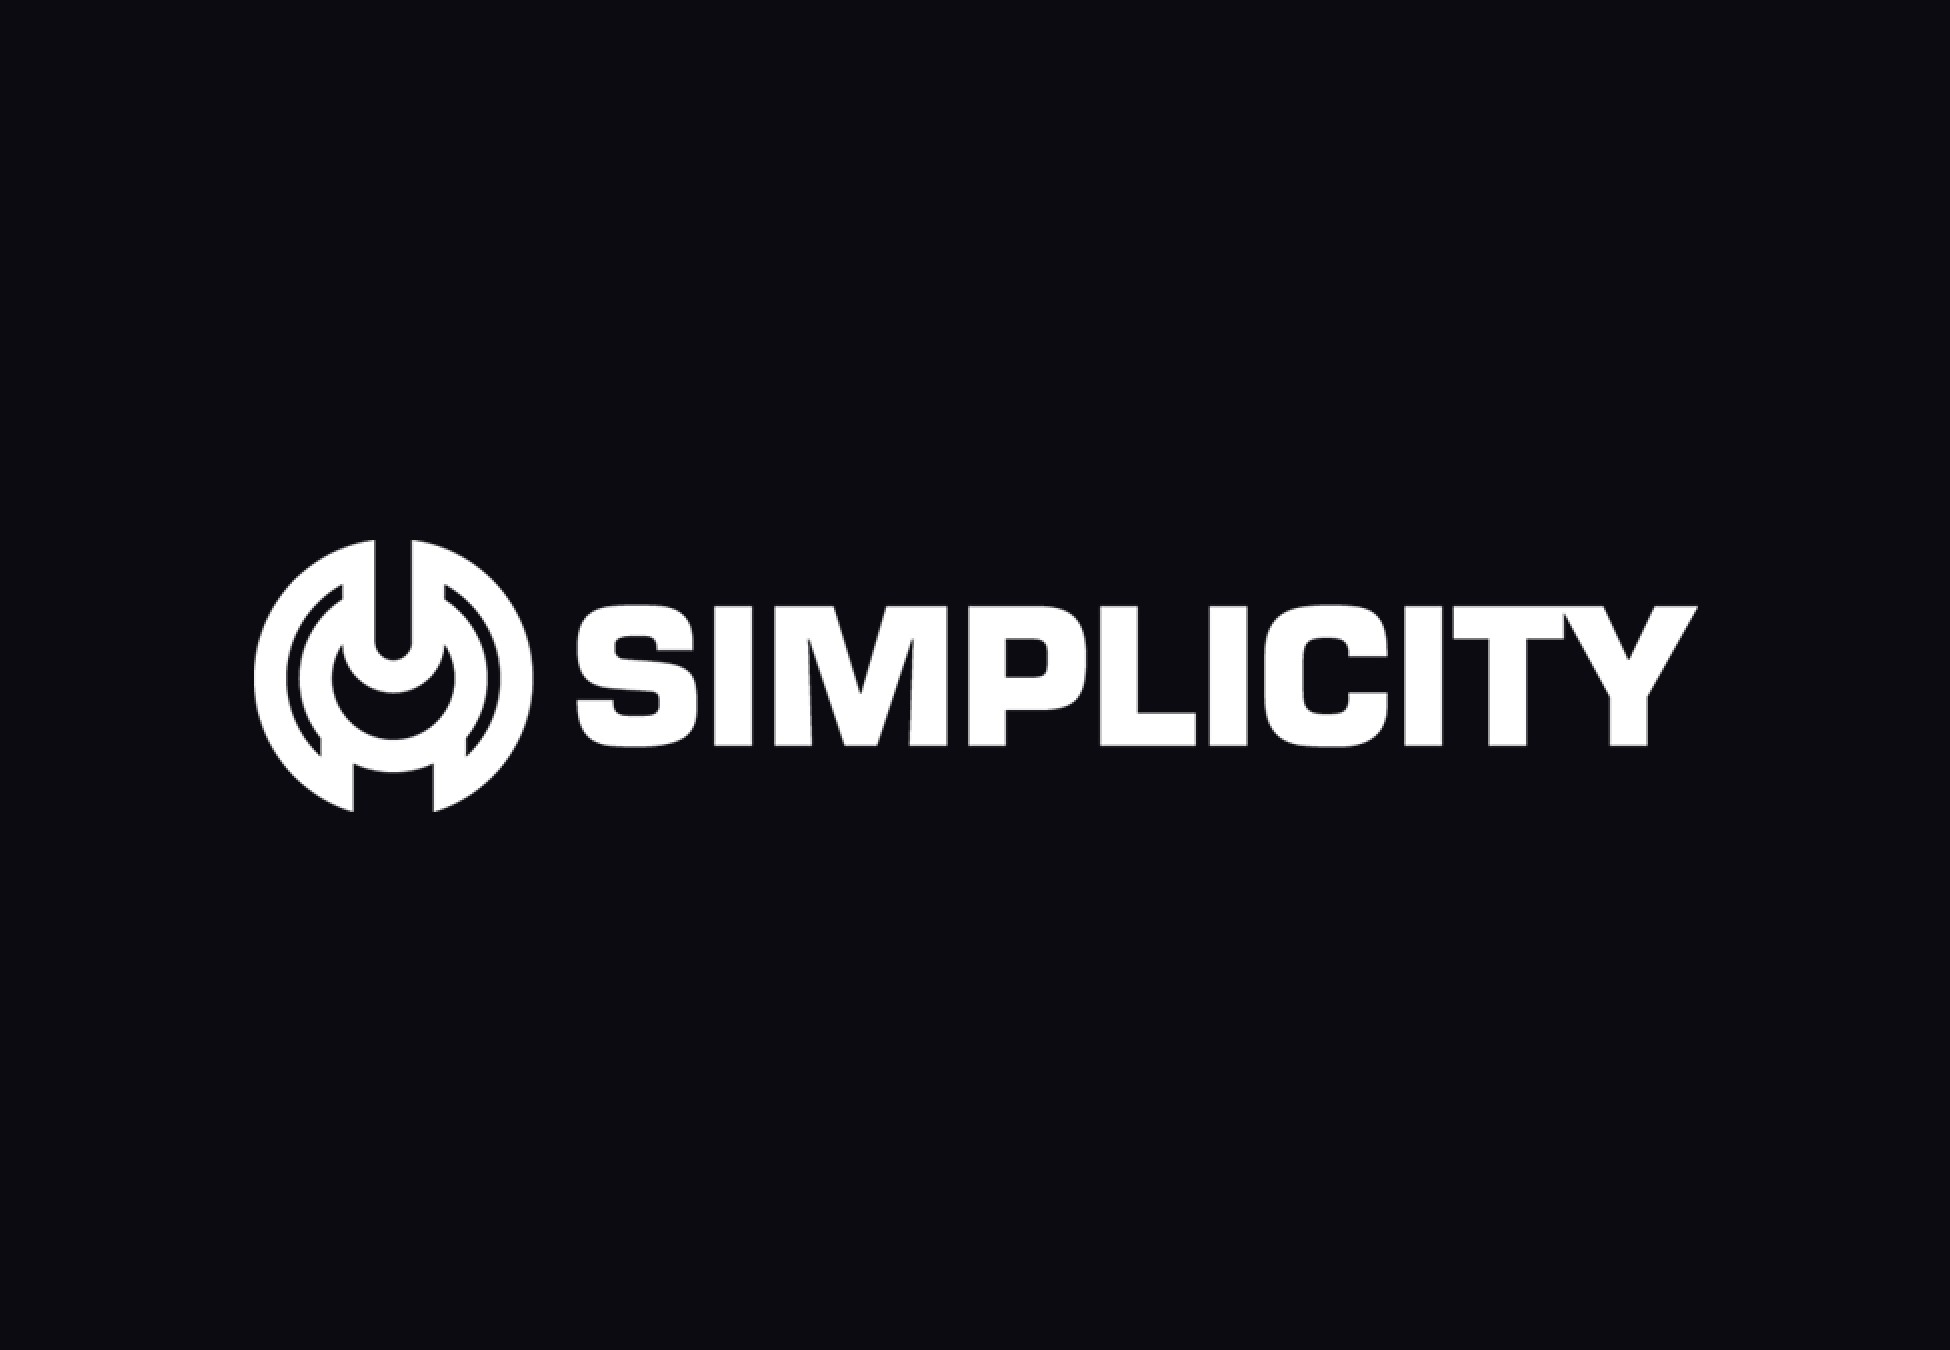 Simplicity Esports Marks it New Alliance with Newzoo